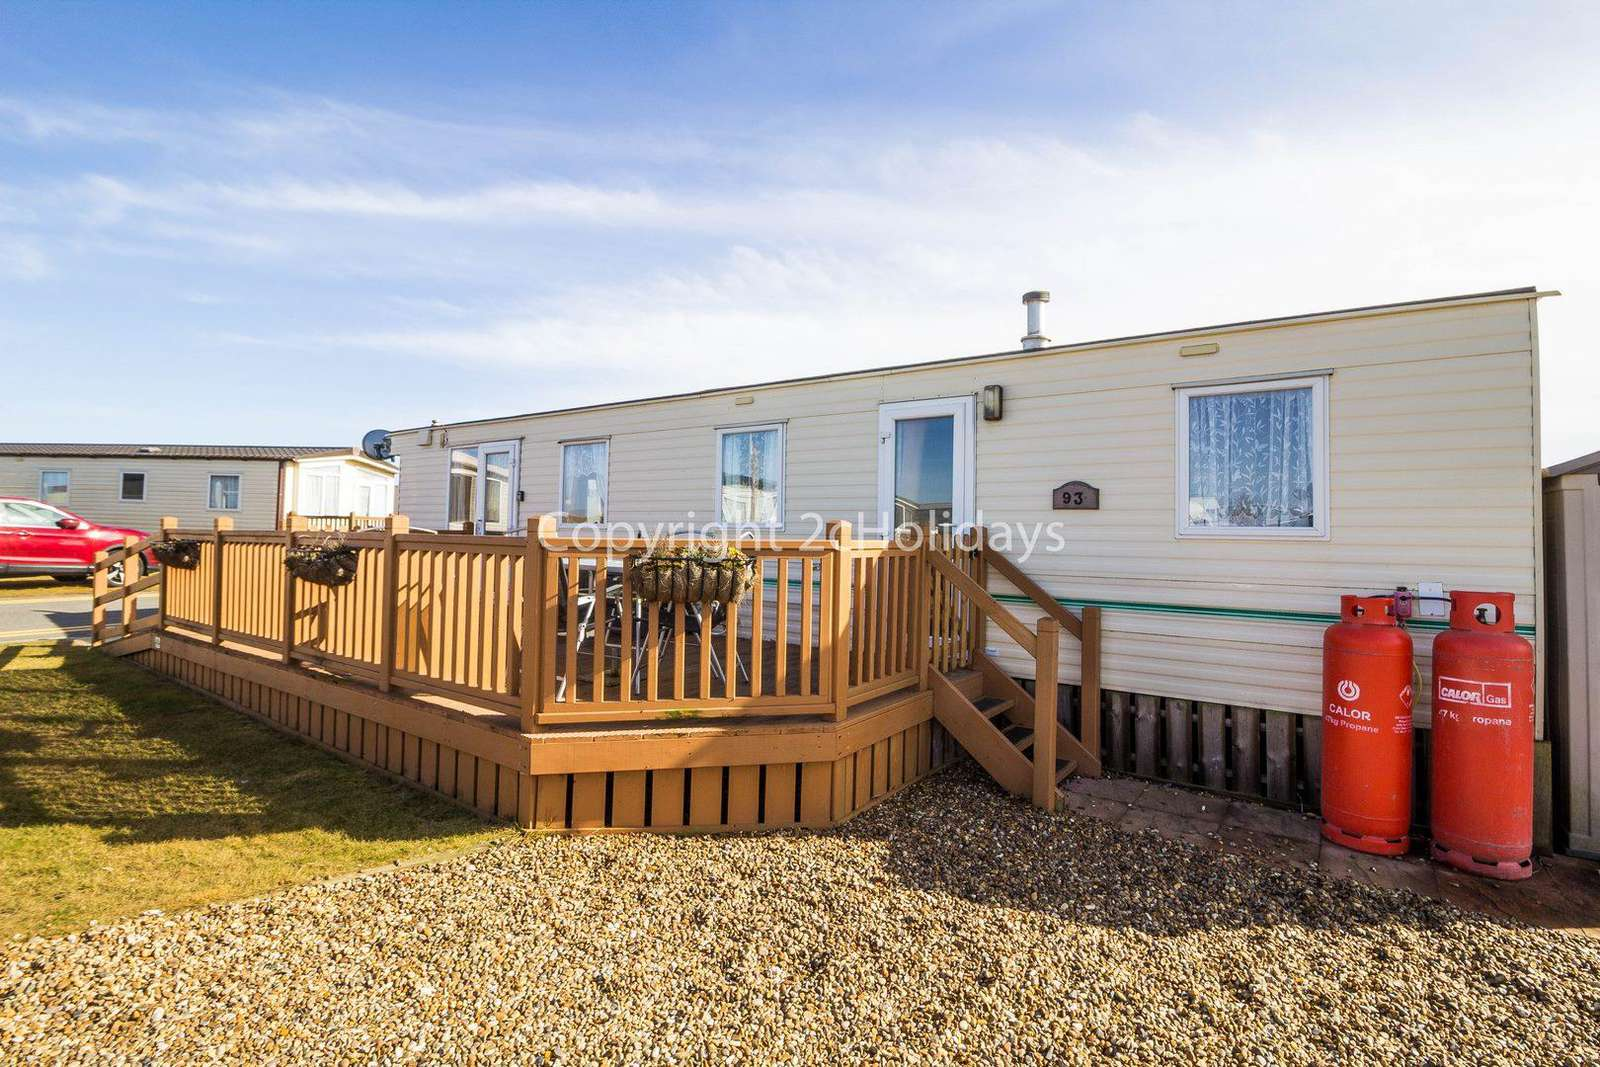 Great caravan with lots of homely touches throughout